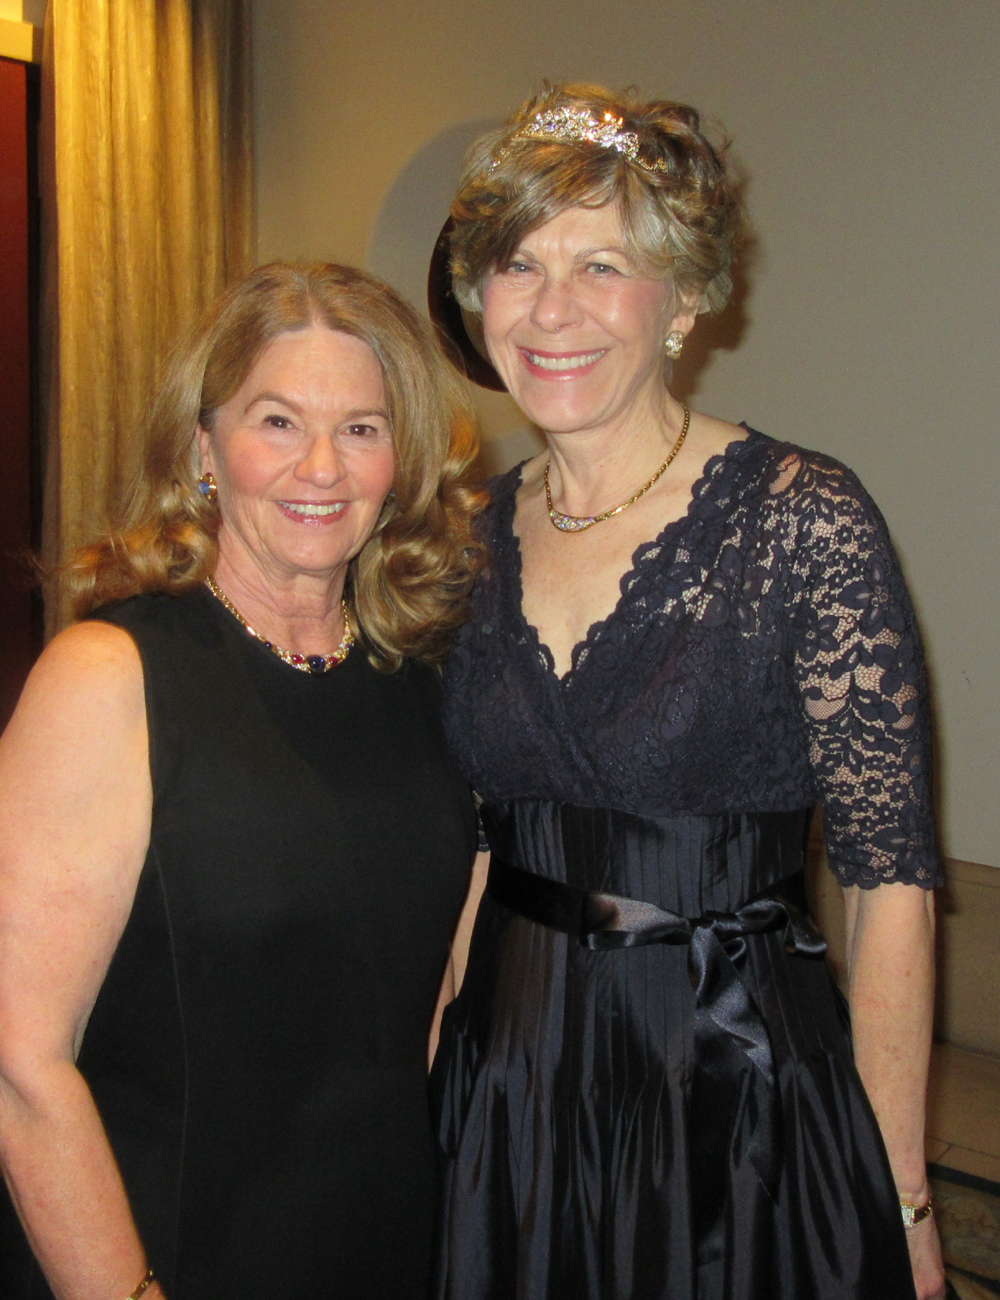 Marian Sprague, left, with friend and Solitaire Sponsor Bobbie Kinnear.